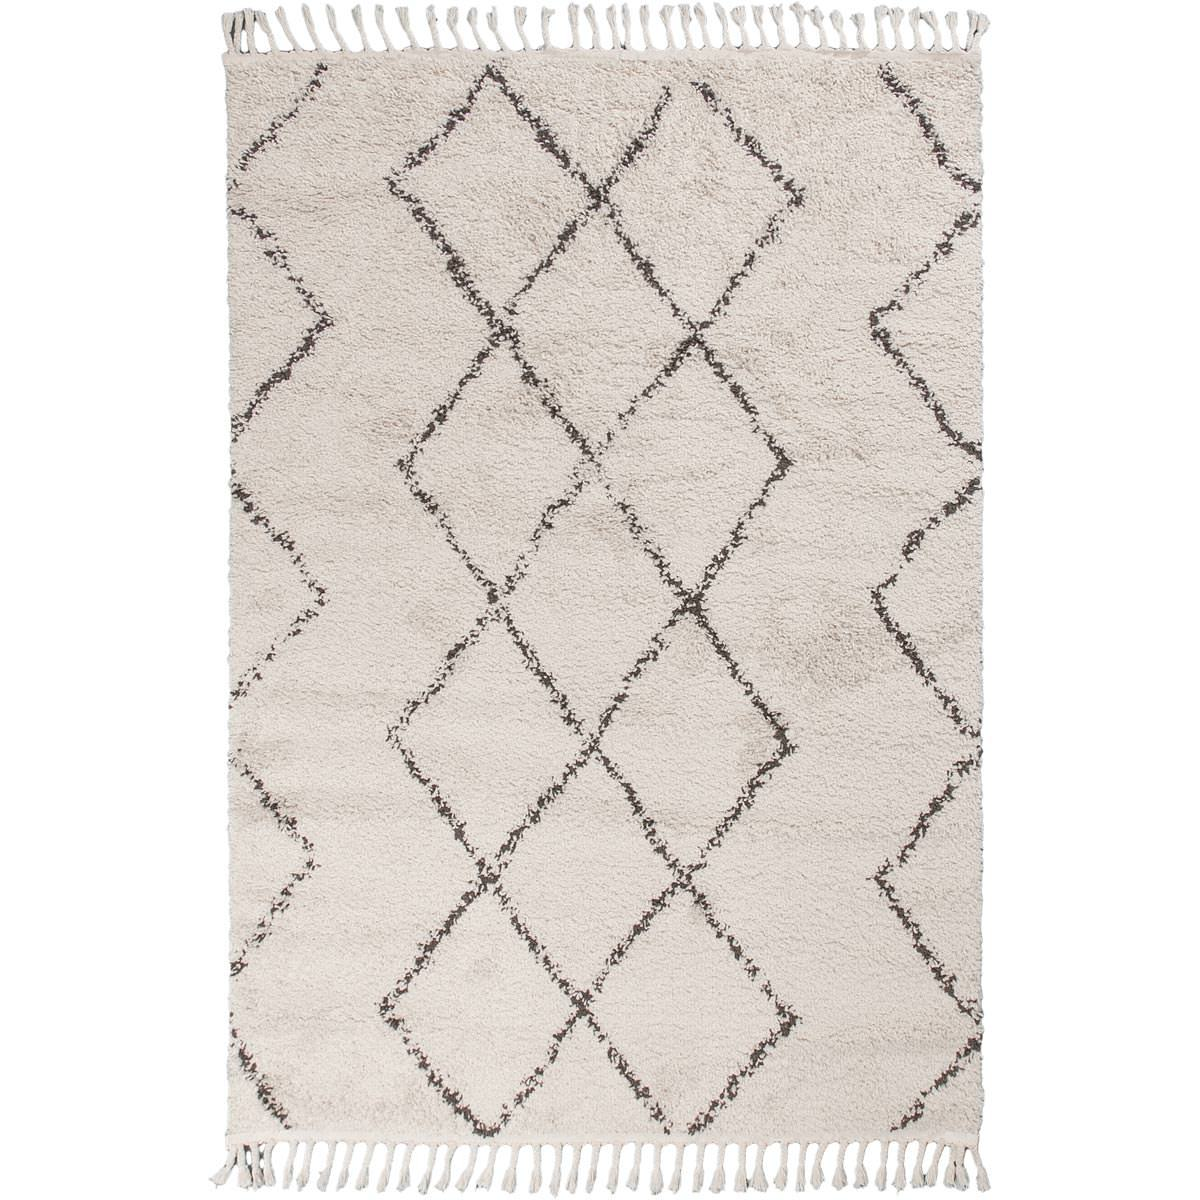 Shaggy Marrakech Rug 03 Cream/Black 1